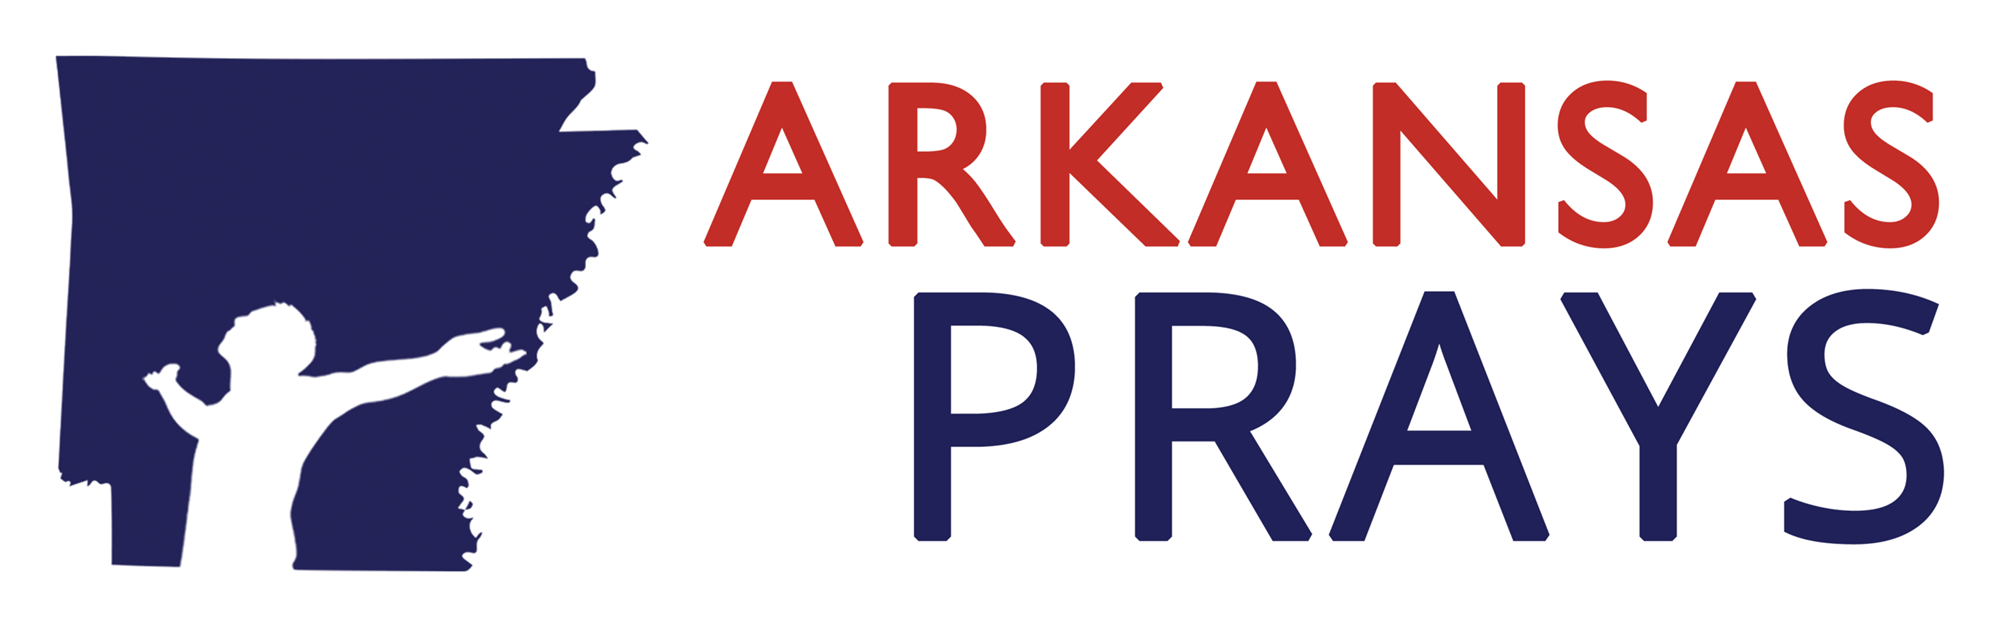 Arkansas Prays logo